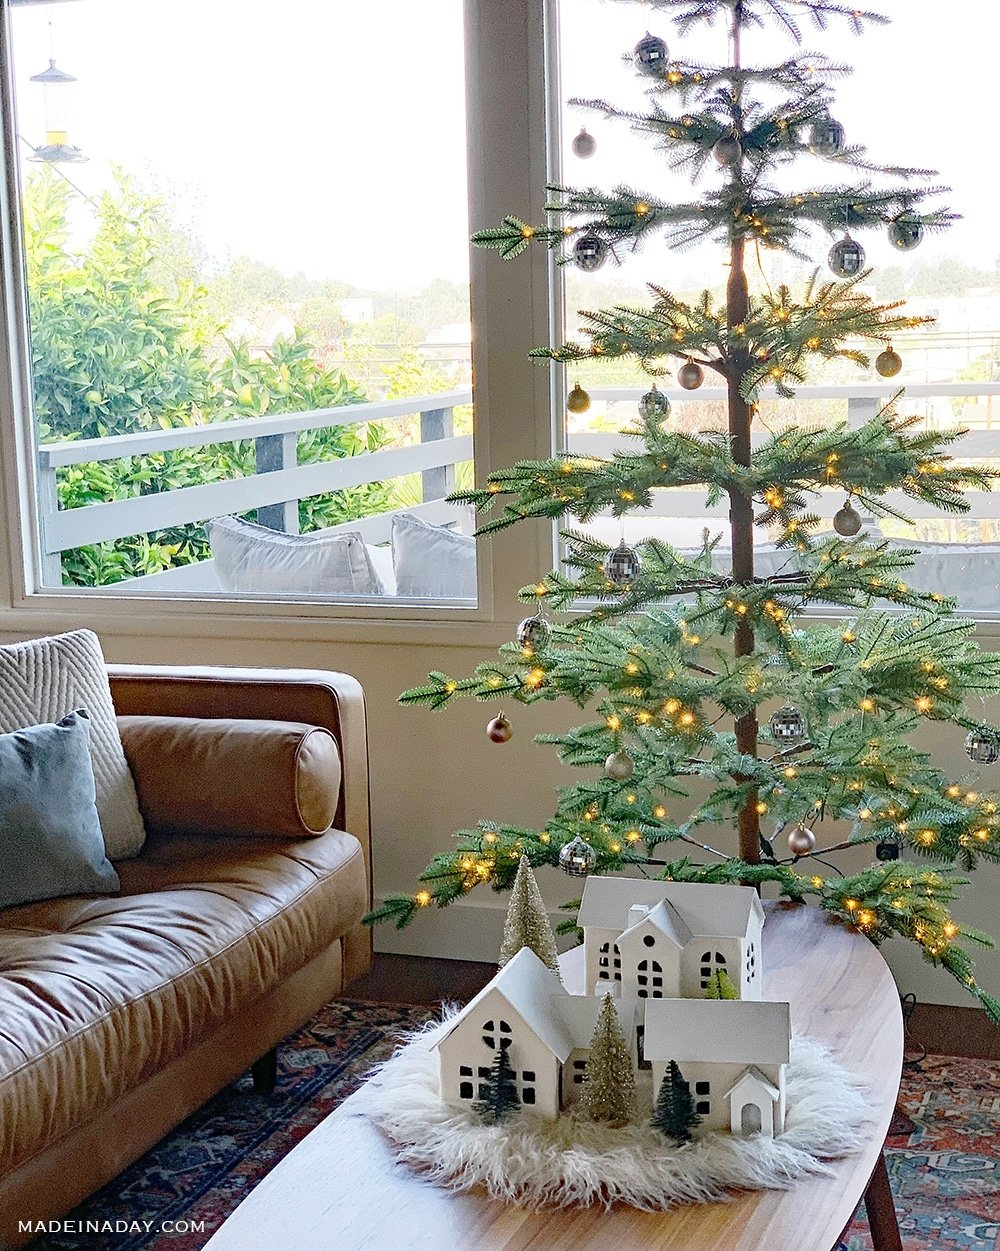 Skinny Sparse Christmas Tree, Mid Century Modern Holiday